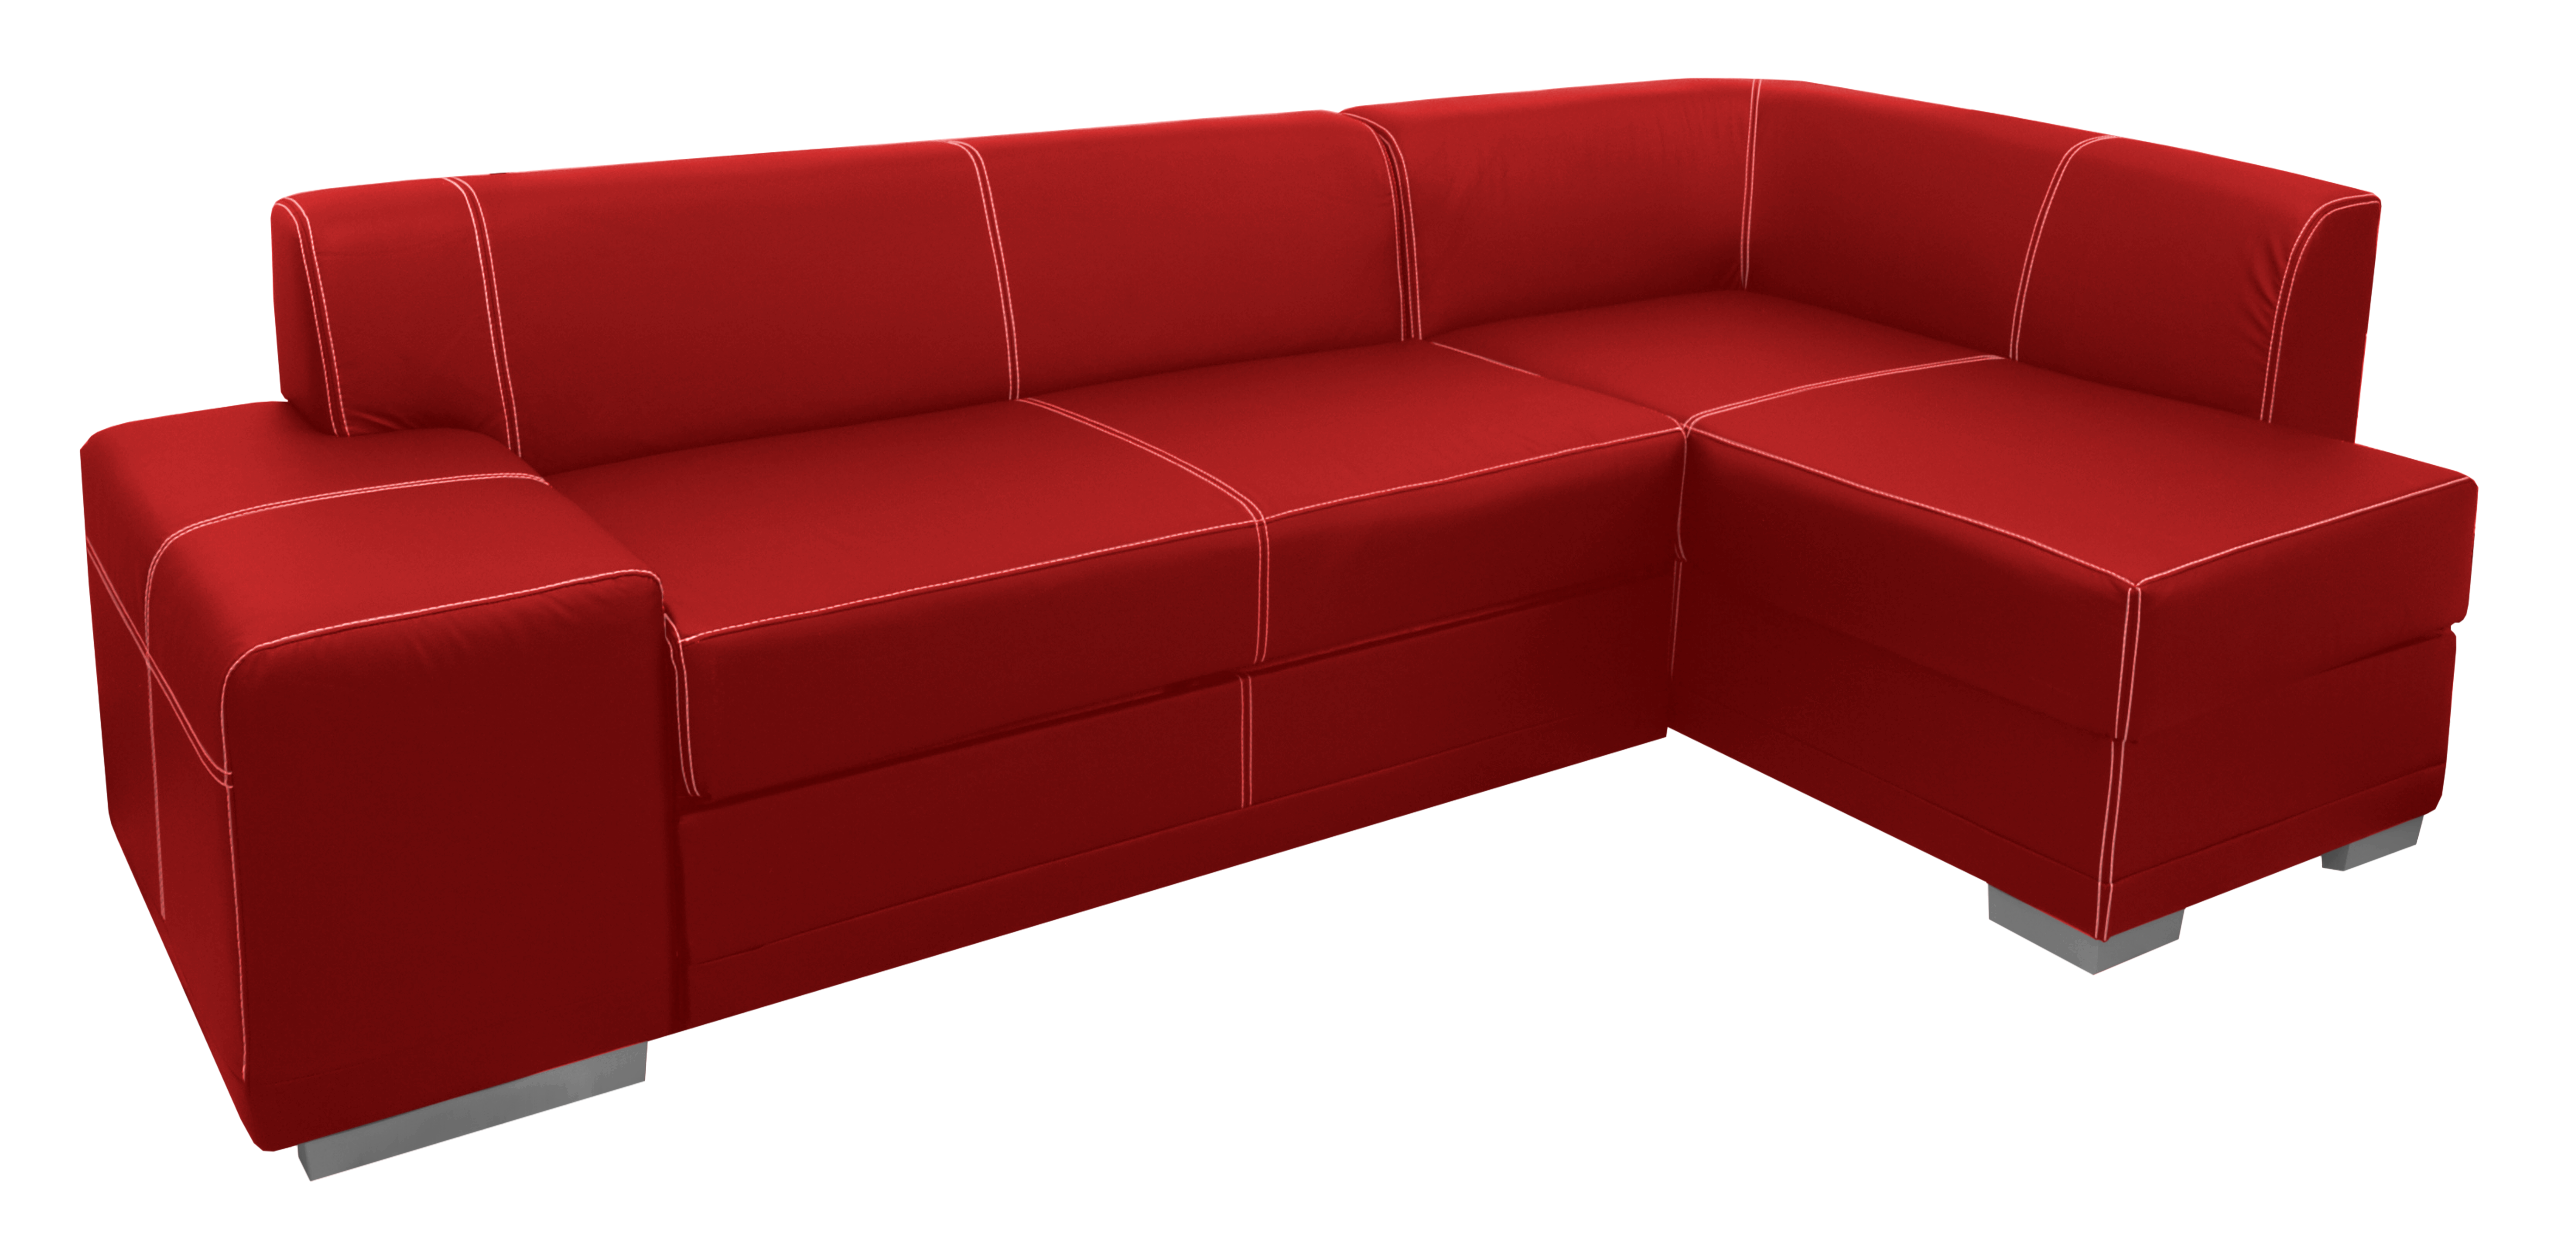 Couch png png. Sofa icon clipart web